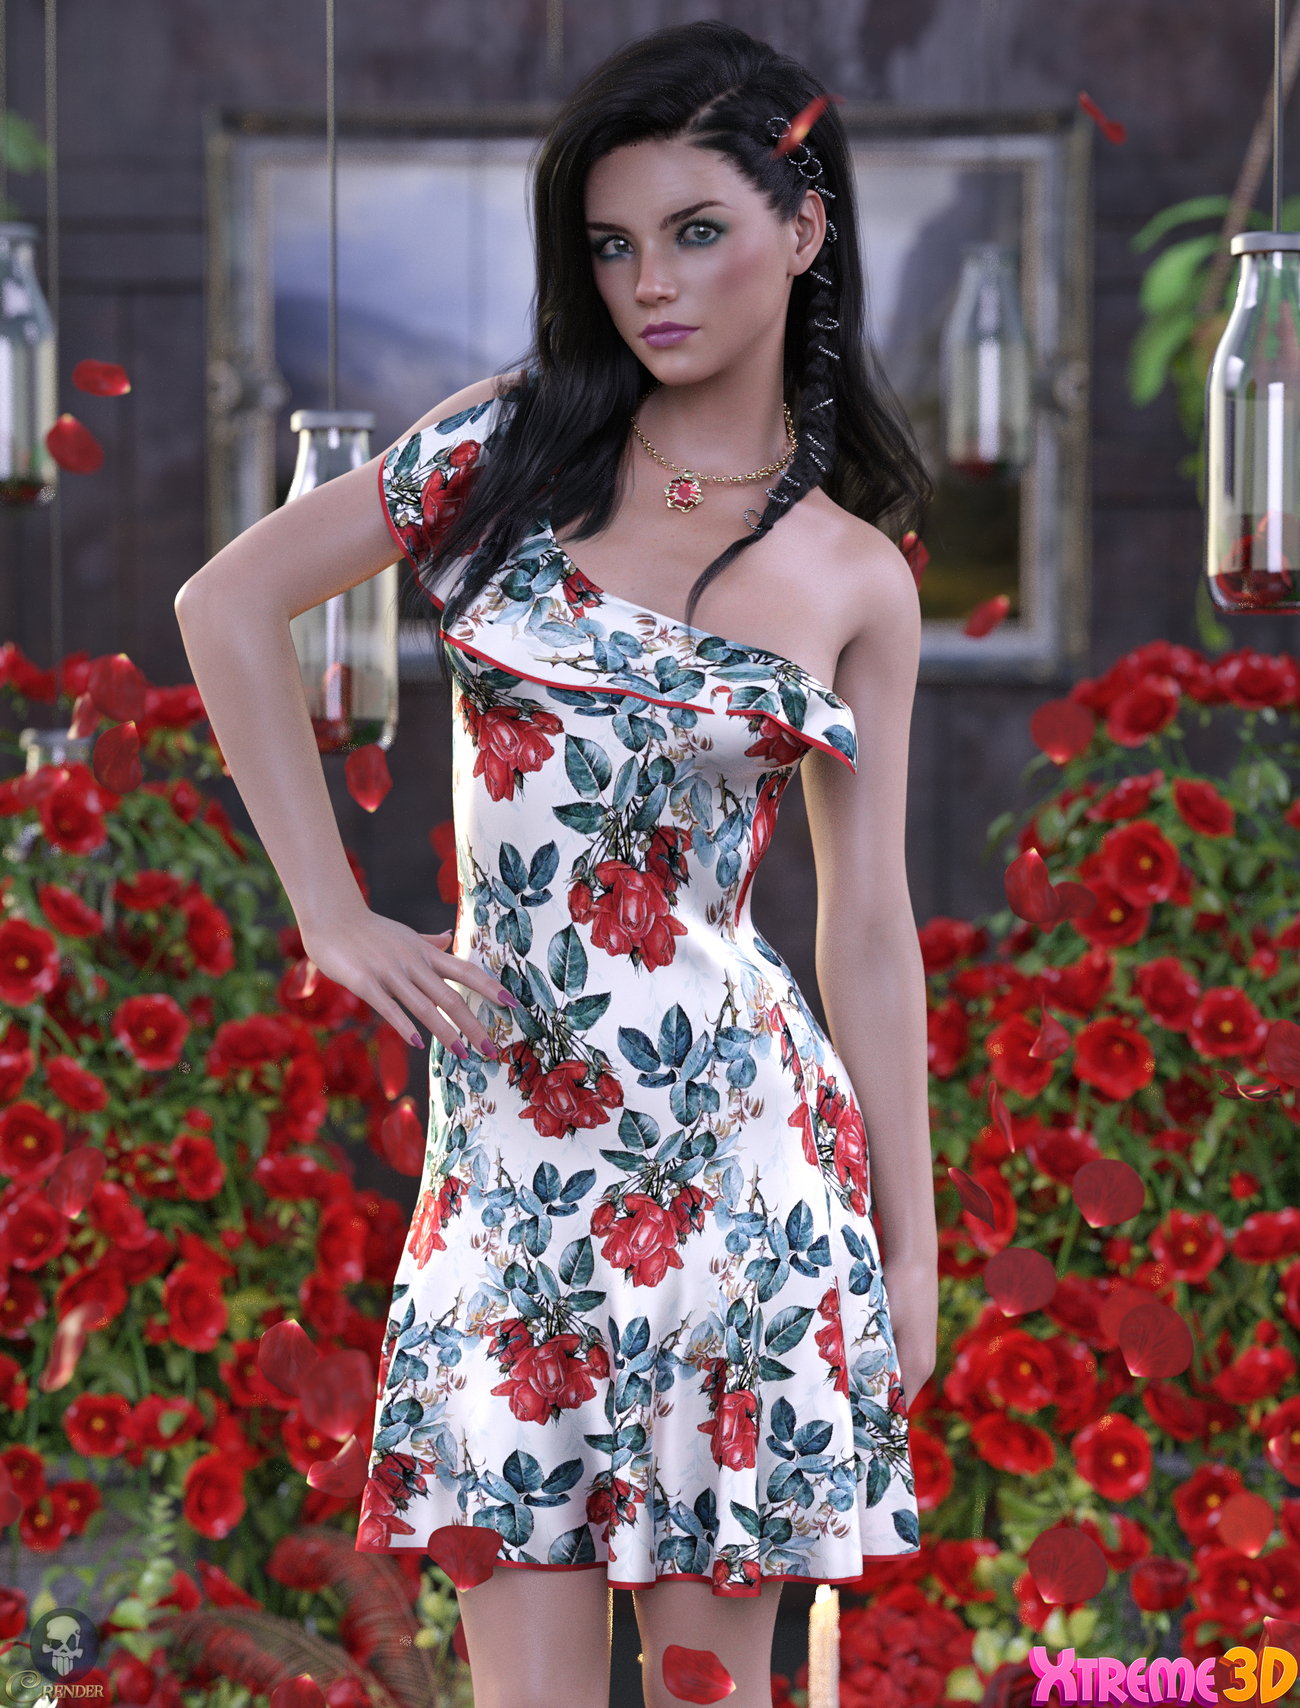 dForce Rose Dress Outfit by Nelmi 2 by crender